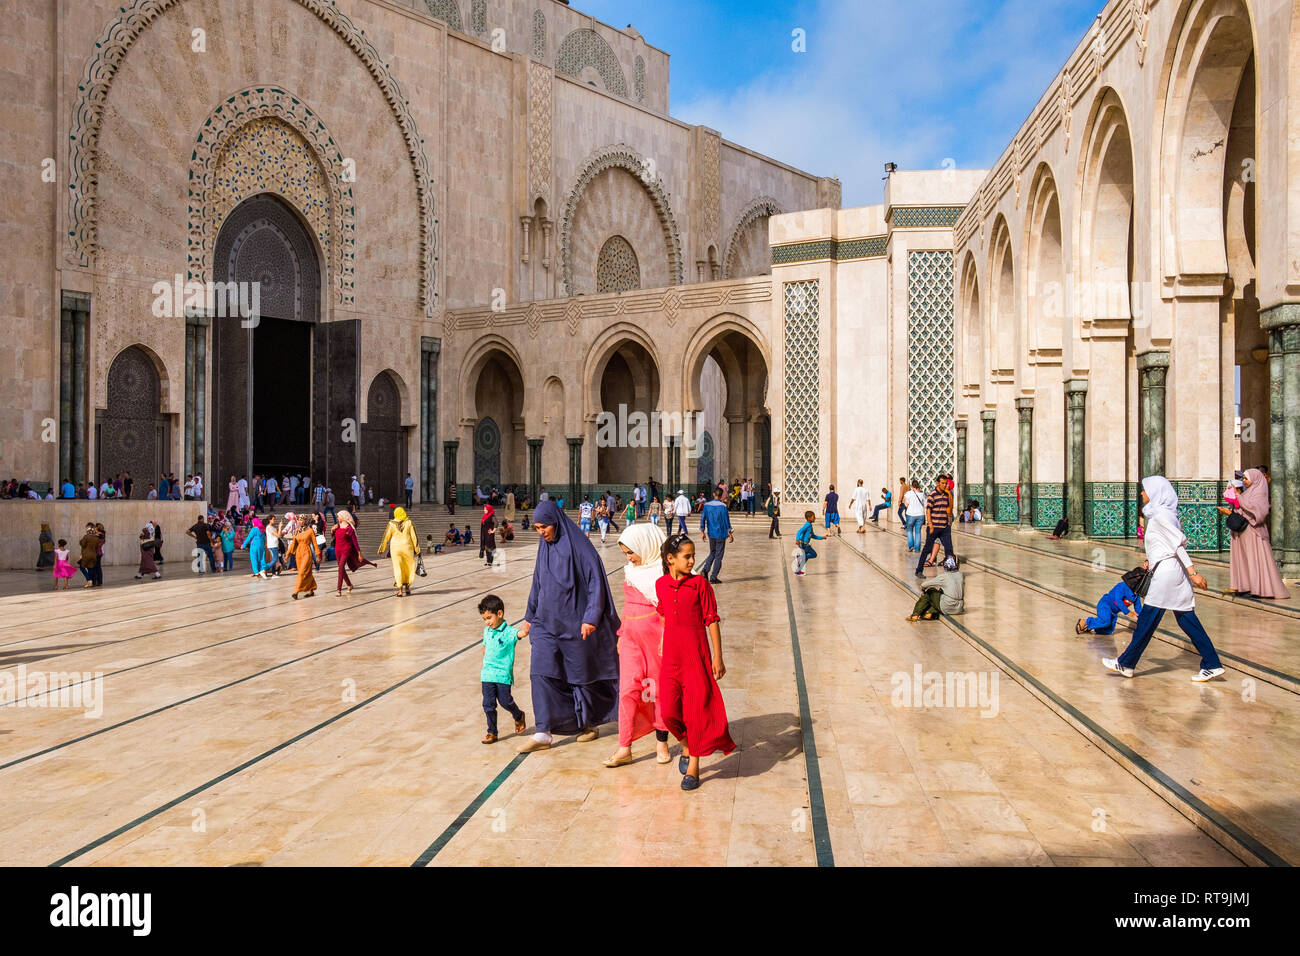 Morocco: Casablanca: Designed by French architect Michel Pinseau and built by the Bouygues Group, the Hassan II Mosque, partly on the sea, consists of - Stock Image